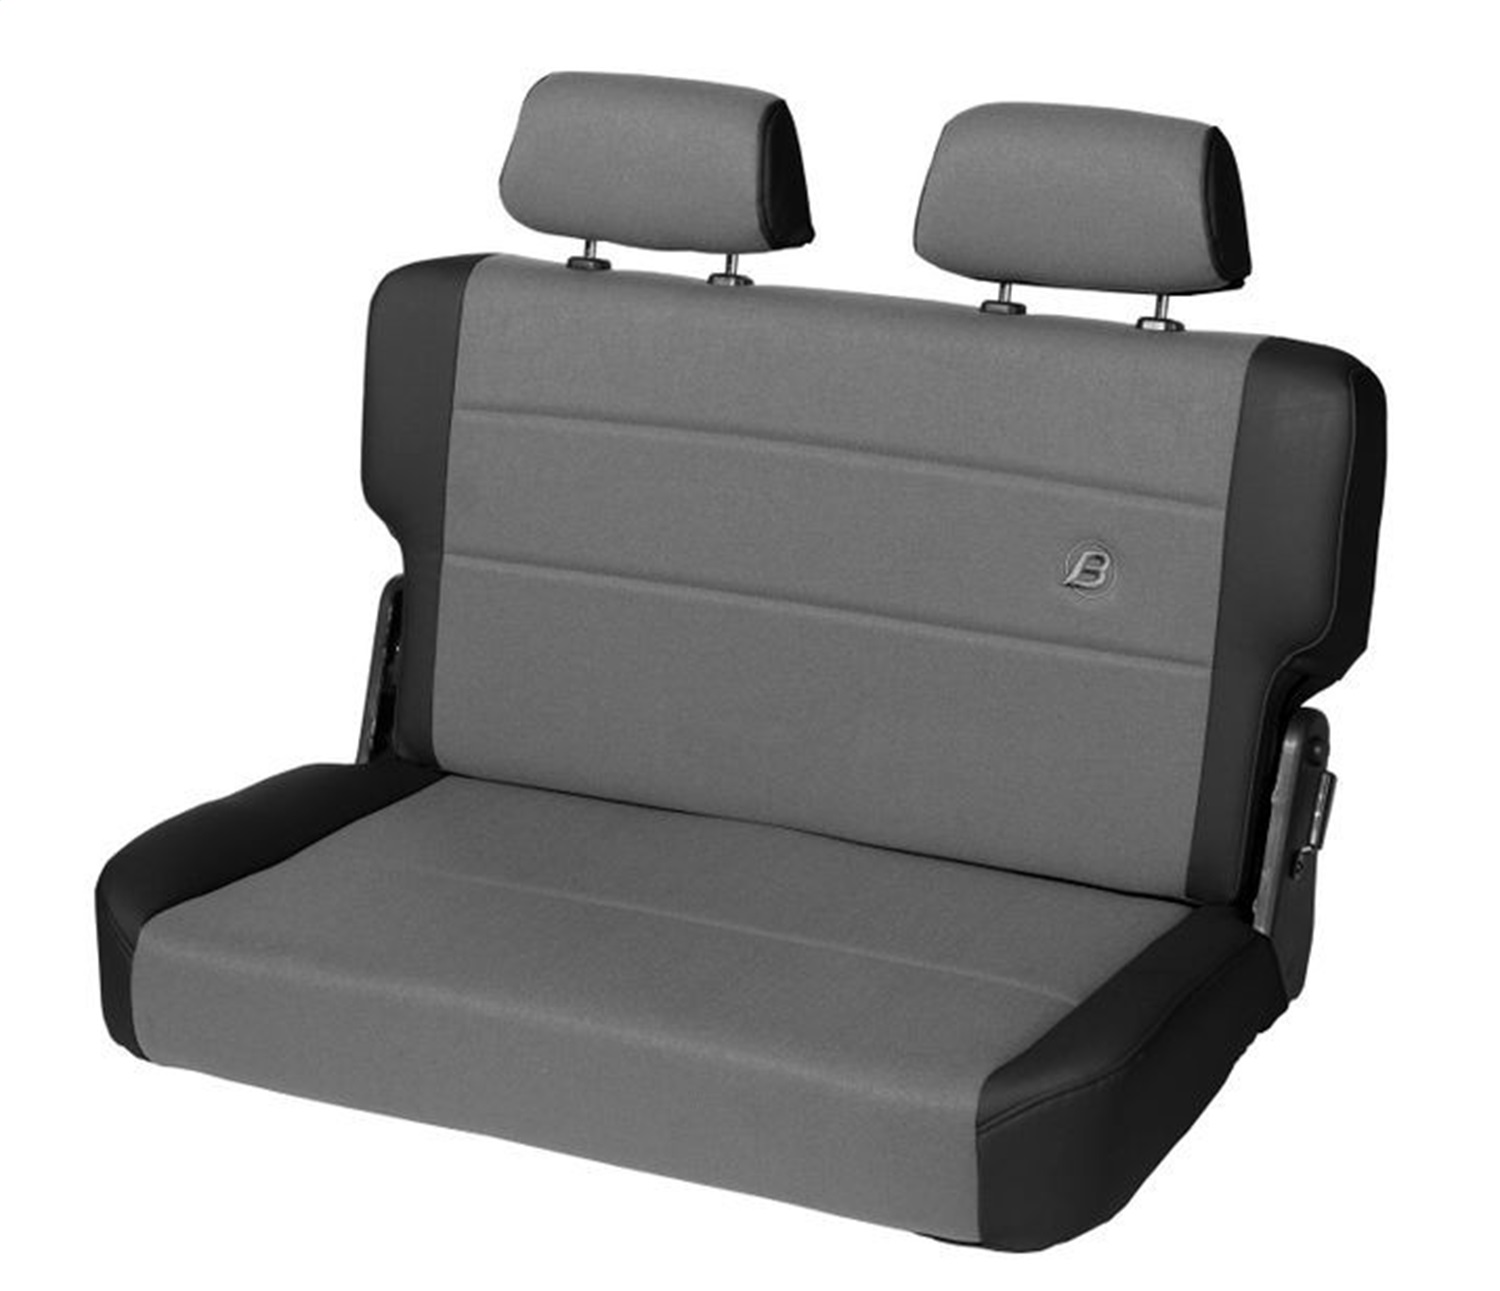 Seating, Seat Covers & Hardware